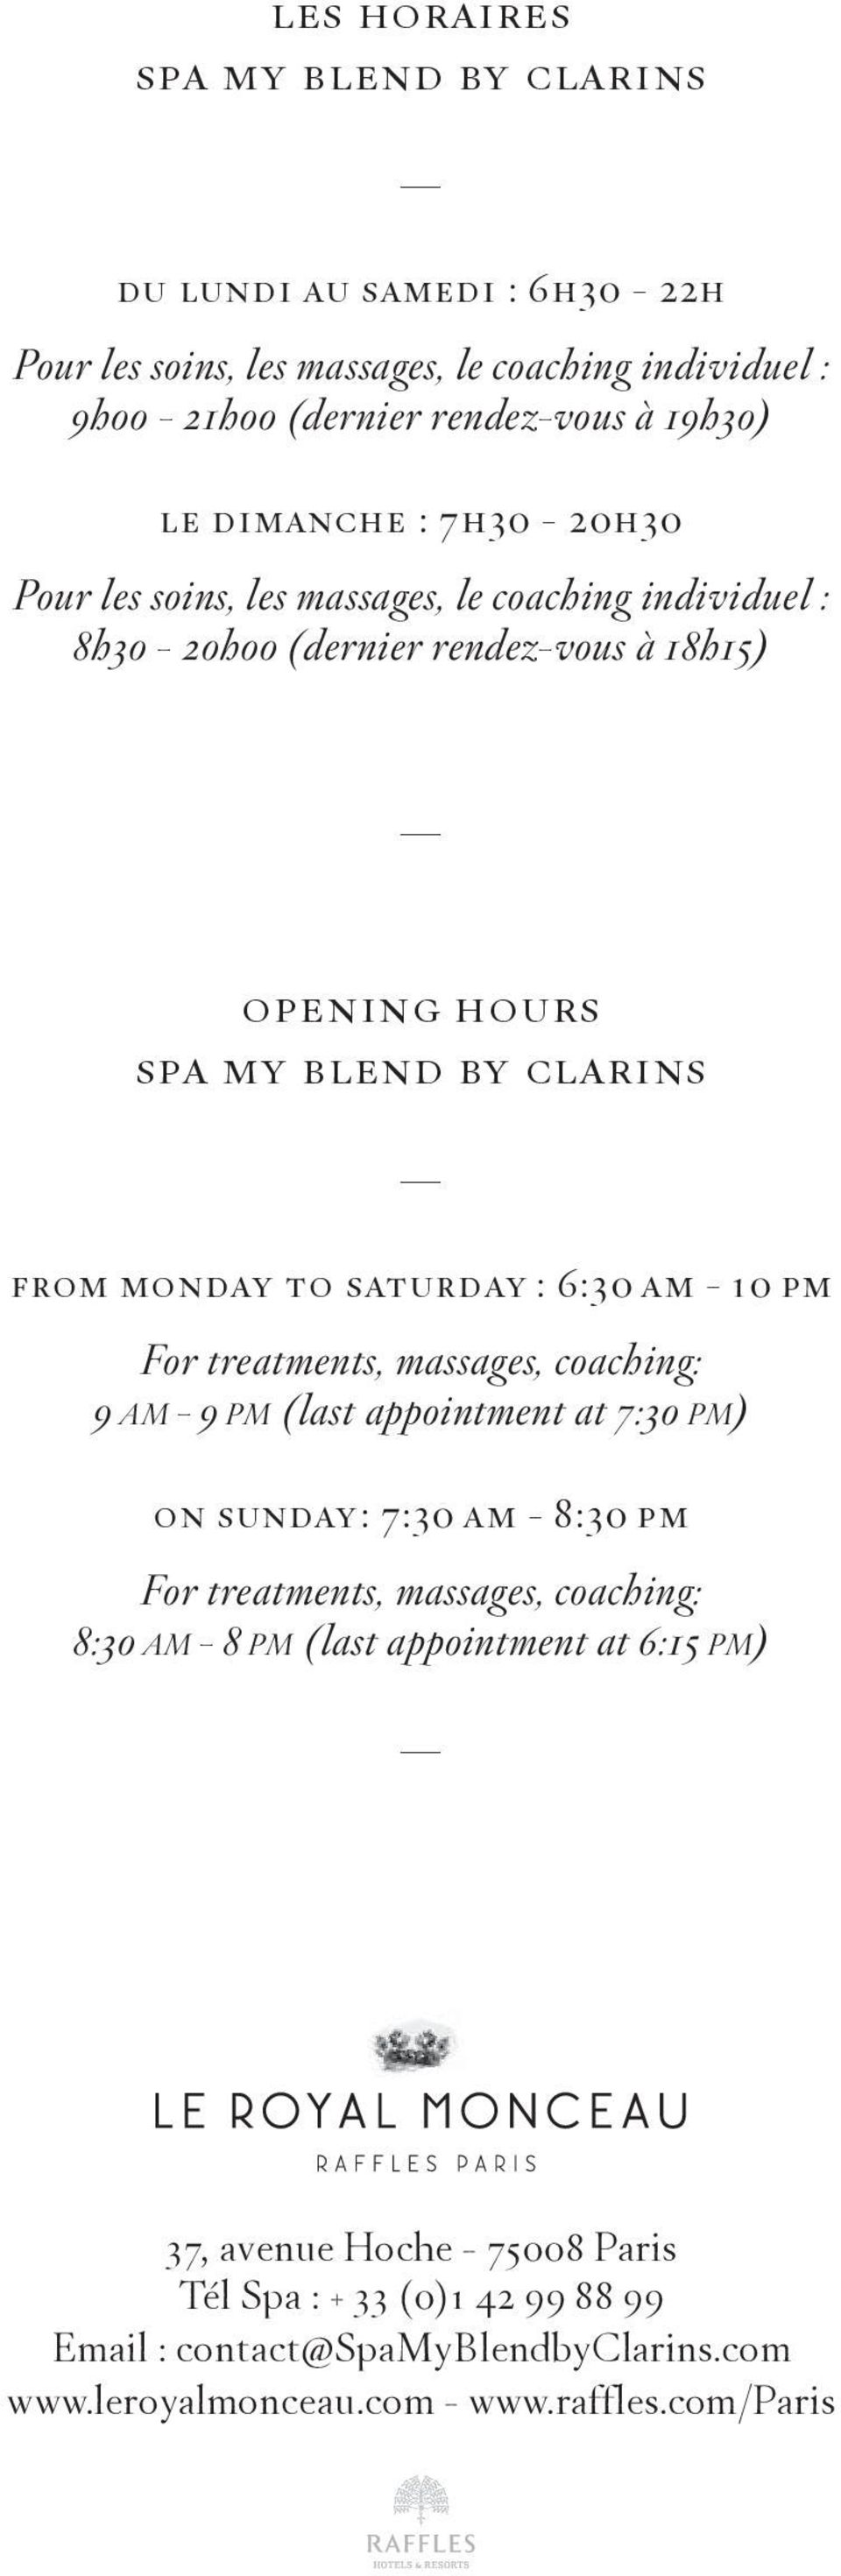 6:30 am - 10 pm For treatments, massages, coaching: 9 AM - 9 PM (last appointment at 7:30 PM) on sunday: 7:30 am - 8:30 pm For treatments, massages, coaching: 8:30 AM - 8 PM